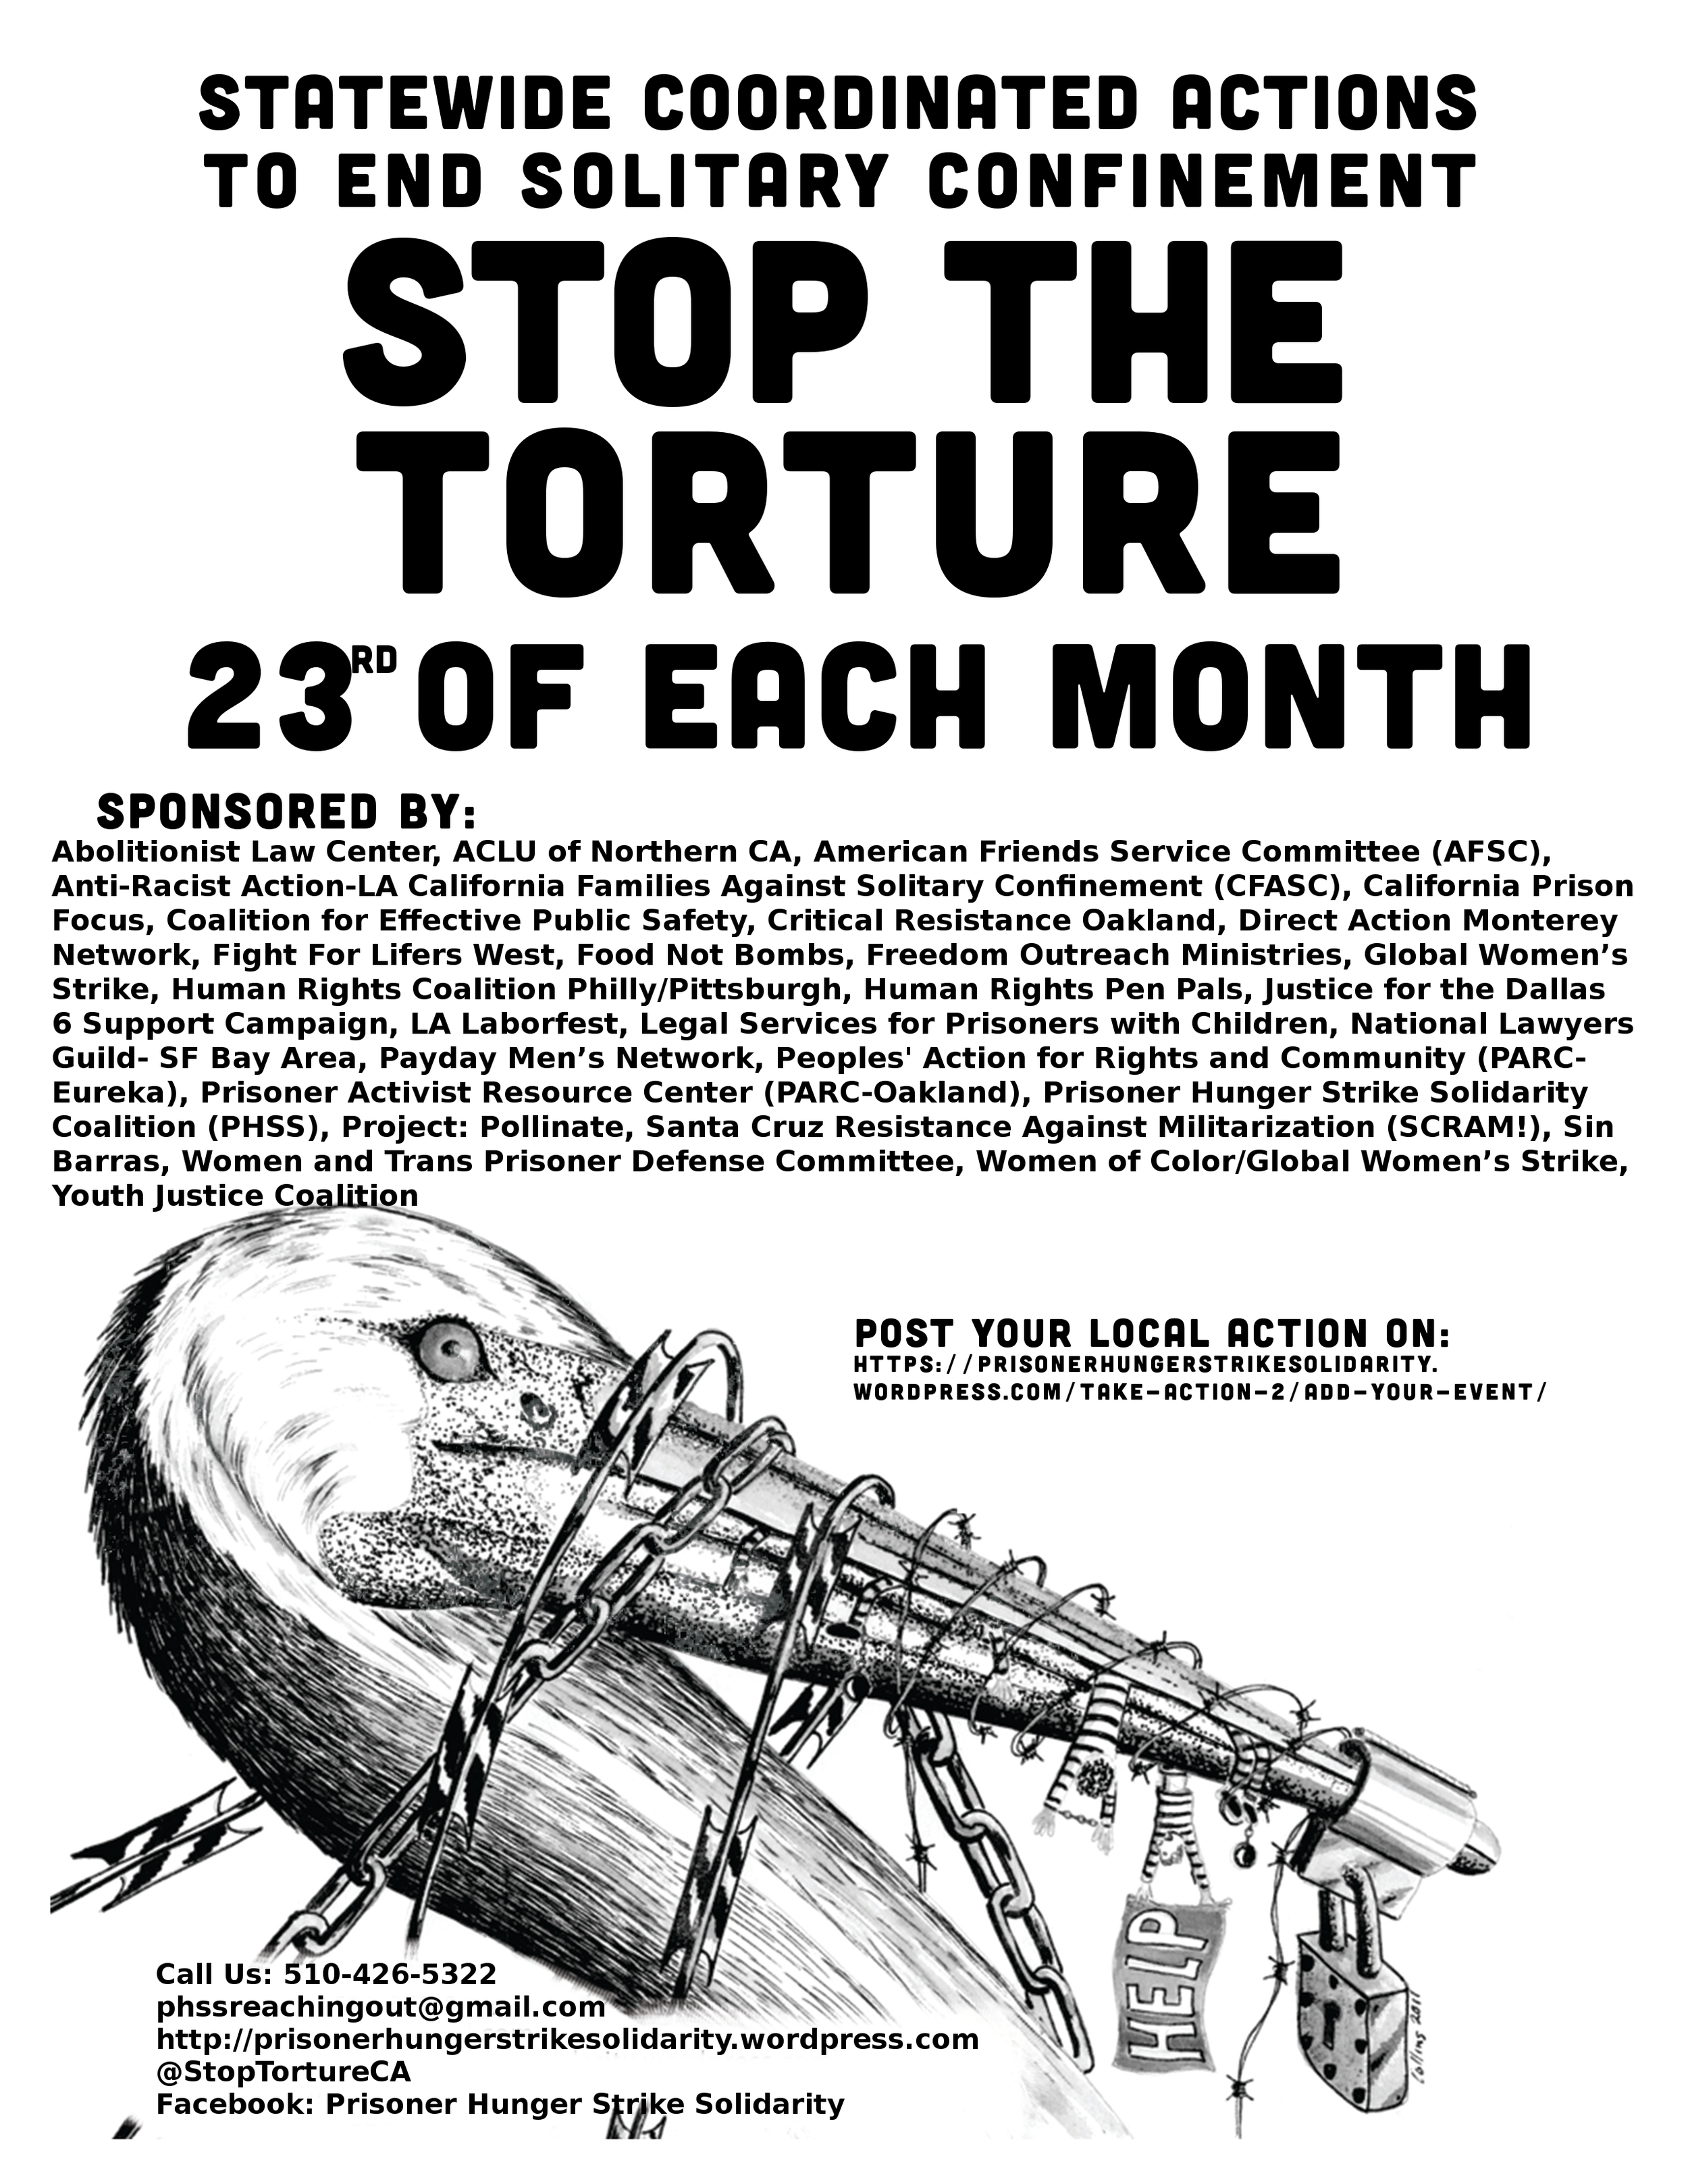 Initial campaign flyer by Prisoner Hunger Strike Solidarity Coalition.